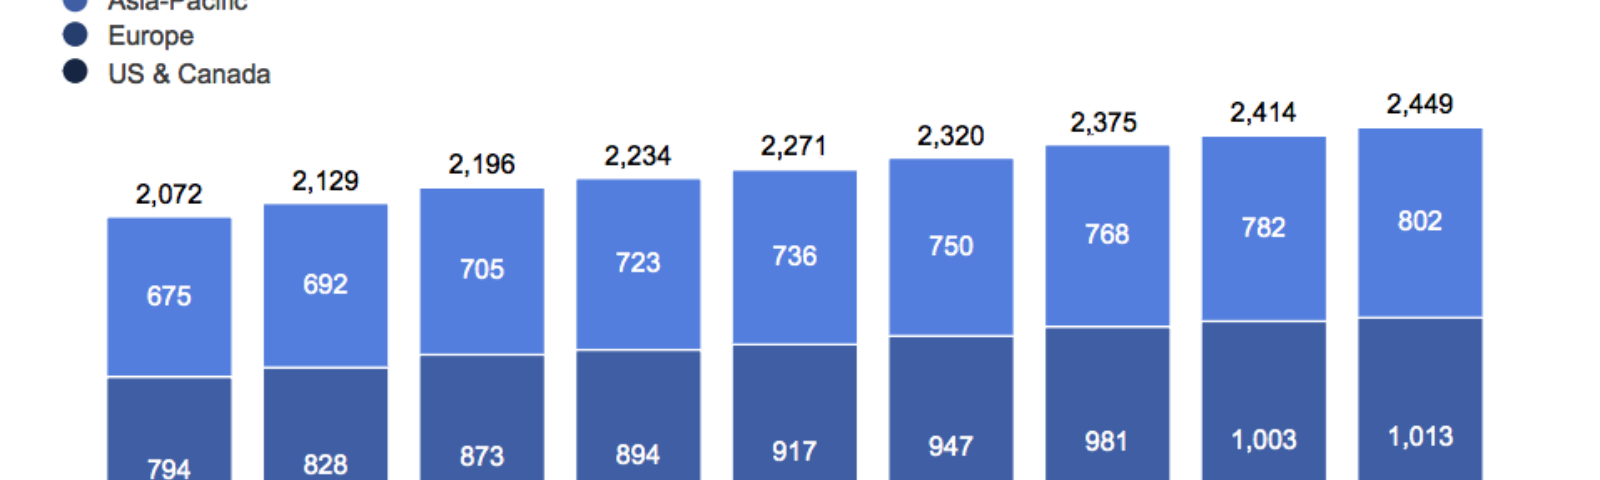 Facebook growth numbers